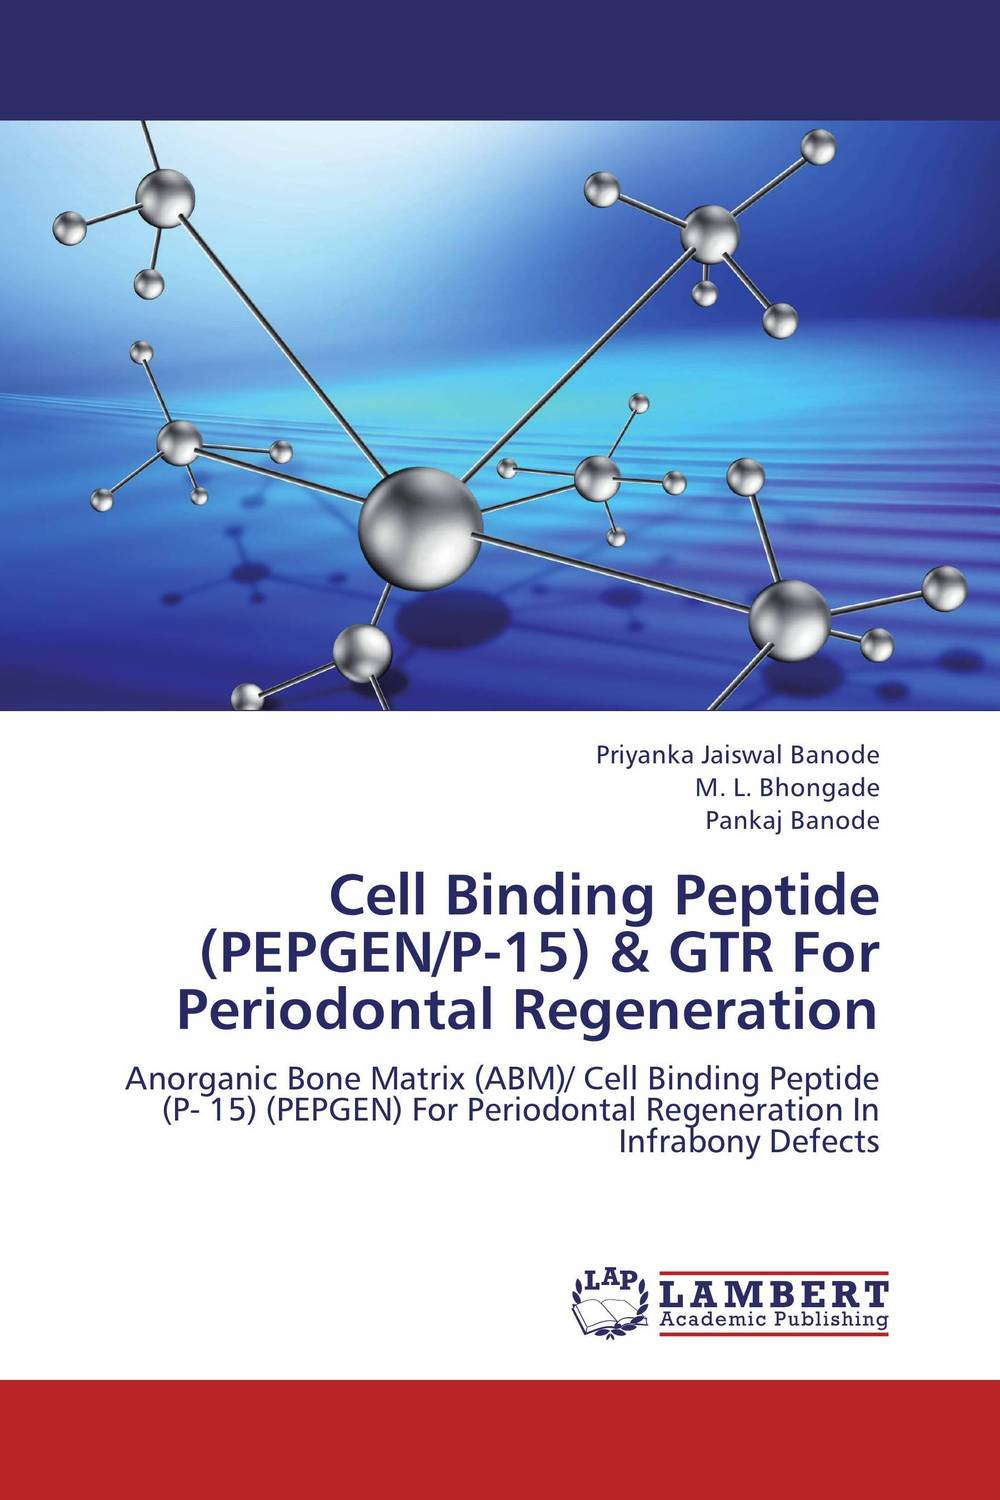 Cell Binding Peptide (PEPGEN/P-15) & GTR For Periodontal Regeneration chandni monga amarjit singh gill and paramjit kaur khinda periodontal regenerative therapy